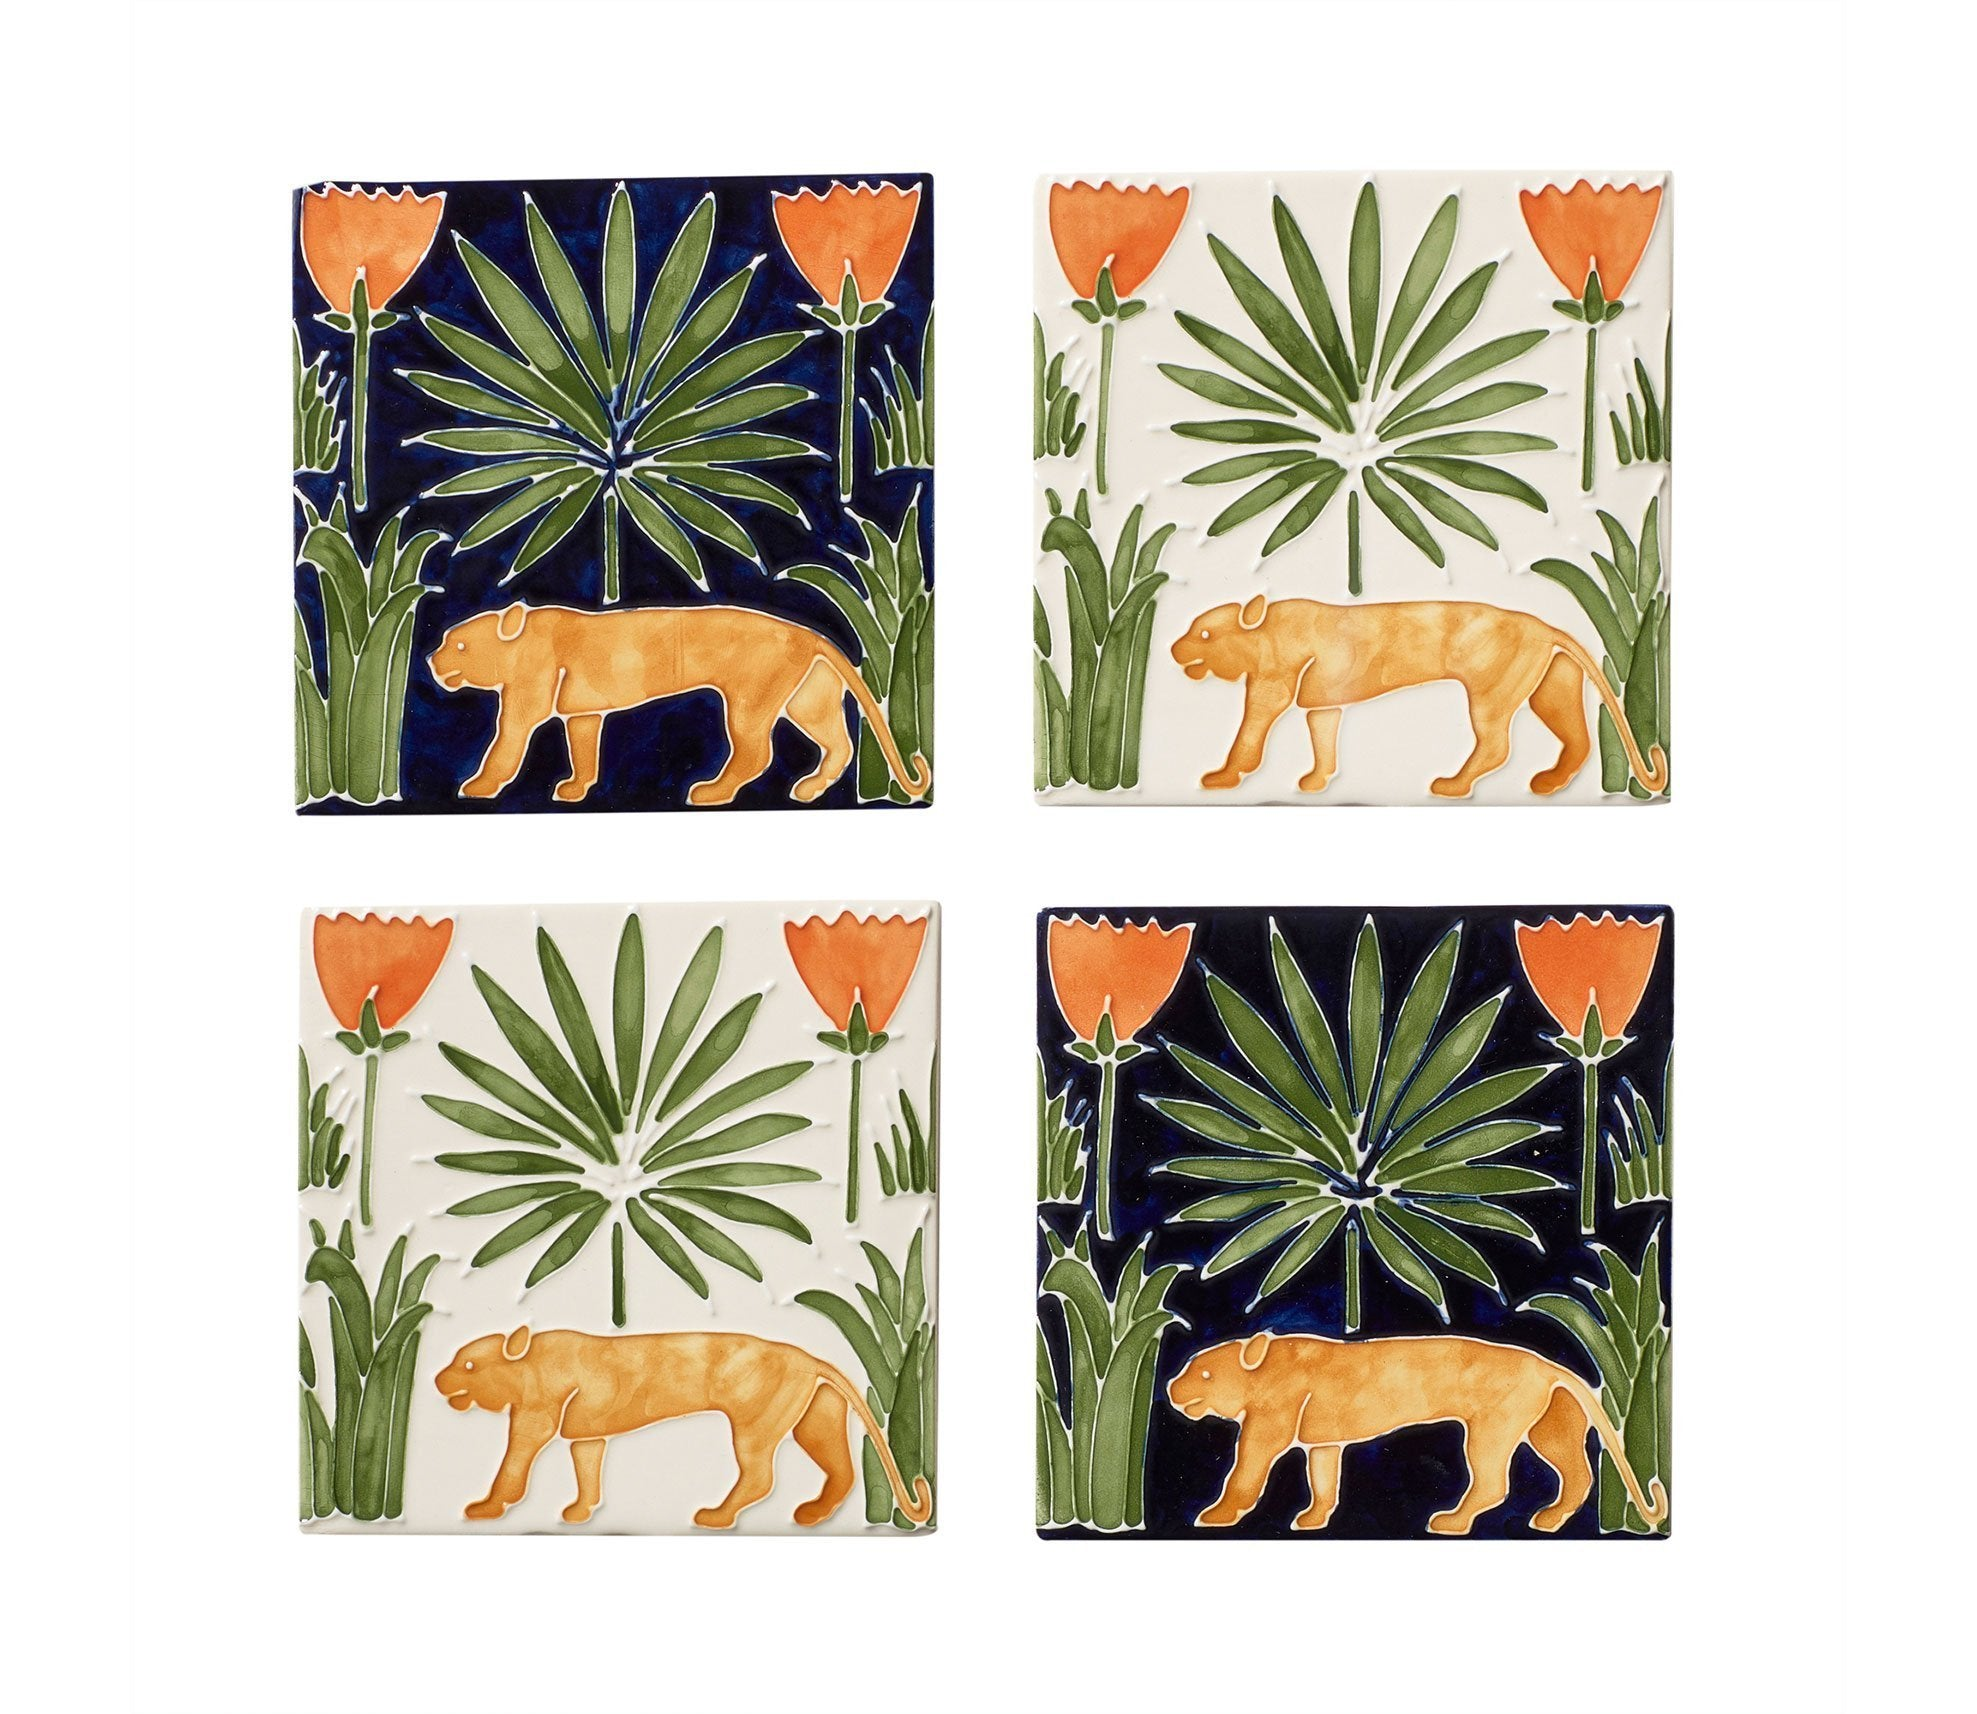 Lioness & Palms Tiles Product Image 2